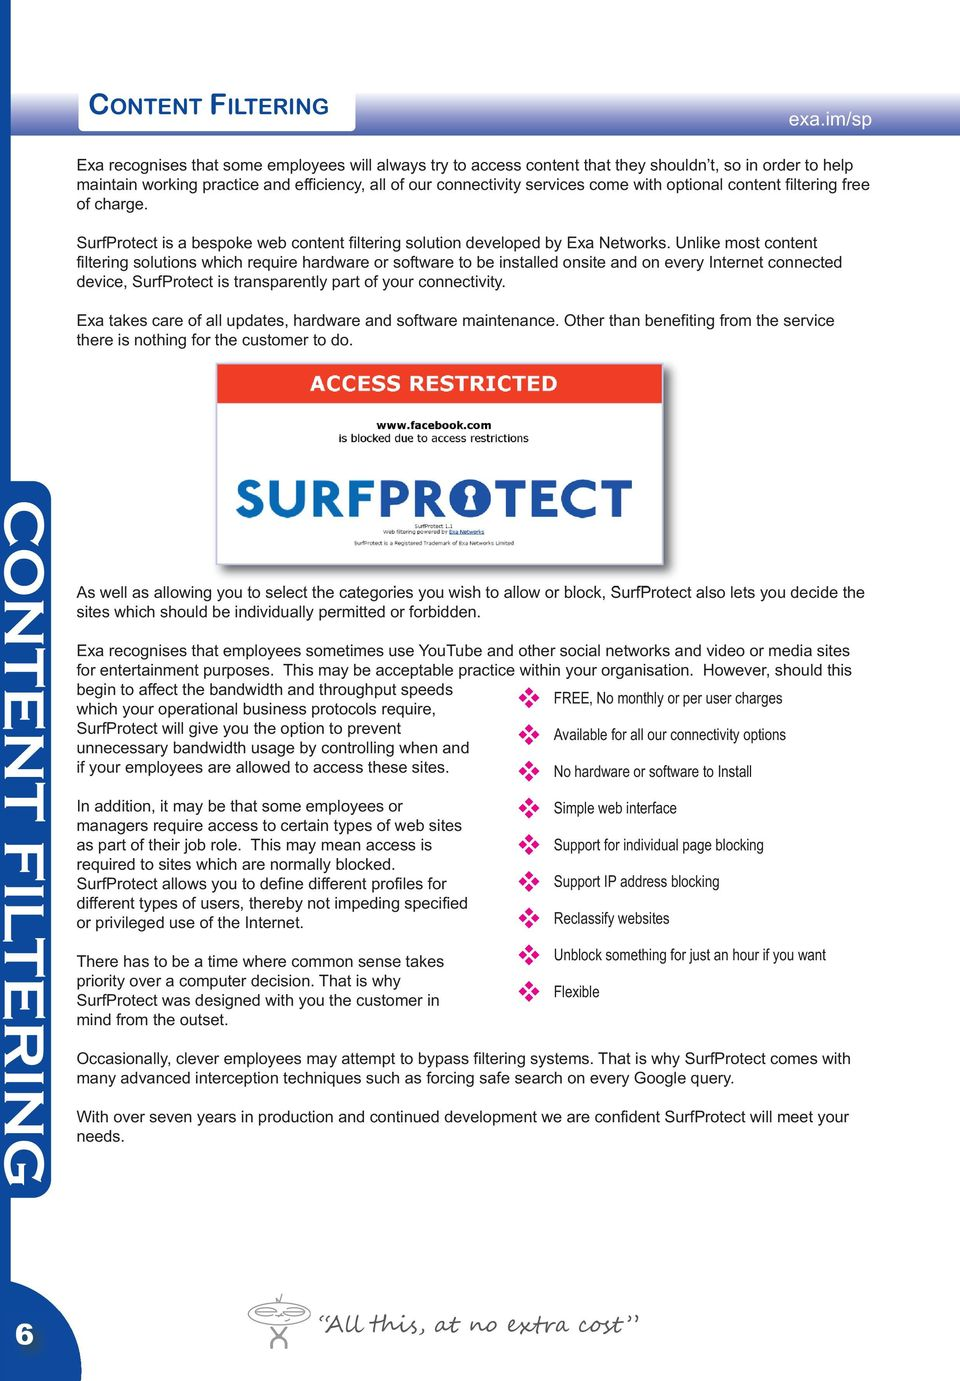 optional content filtering free of charge. SurfProtect is a bespoke web content filtering solution deeloped by Exa Networks.